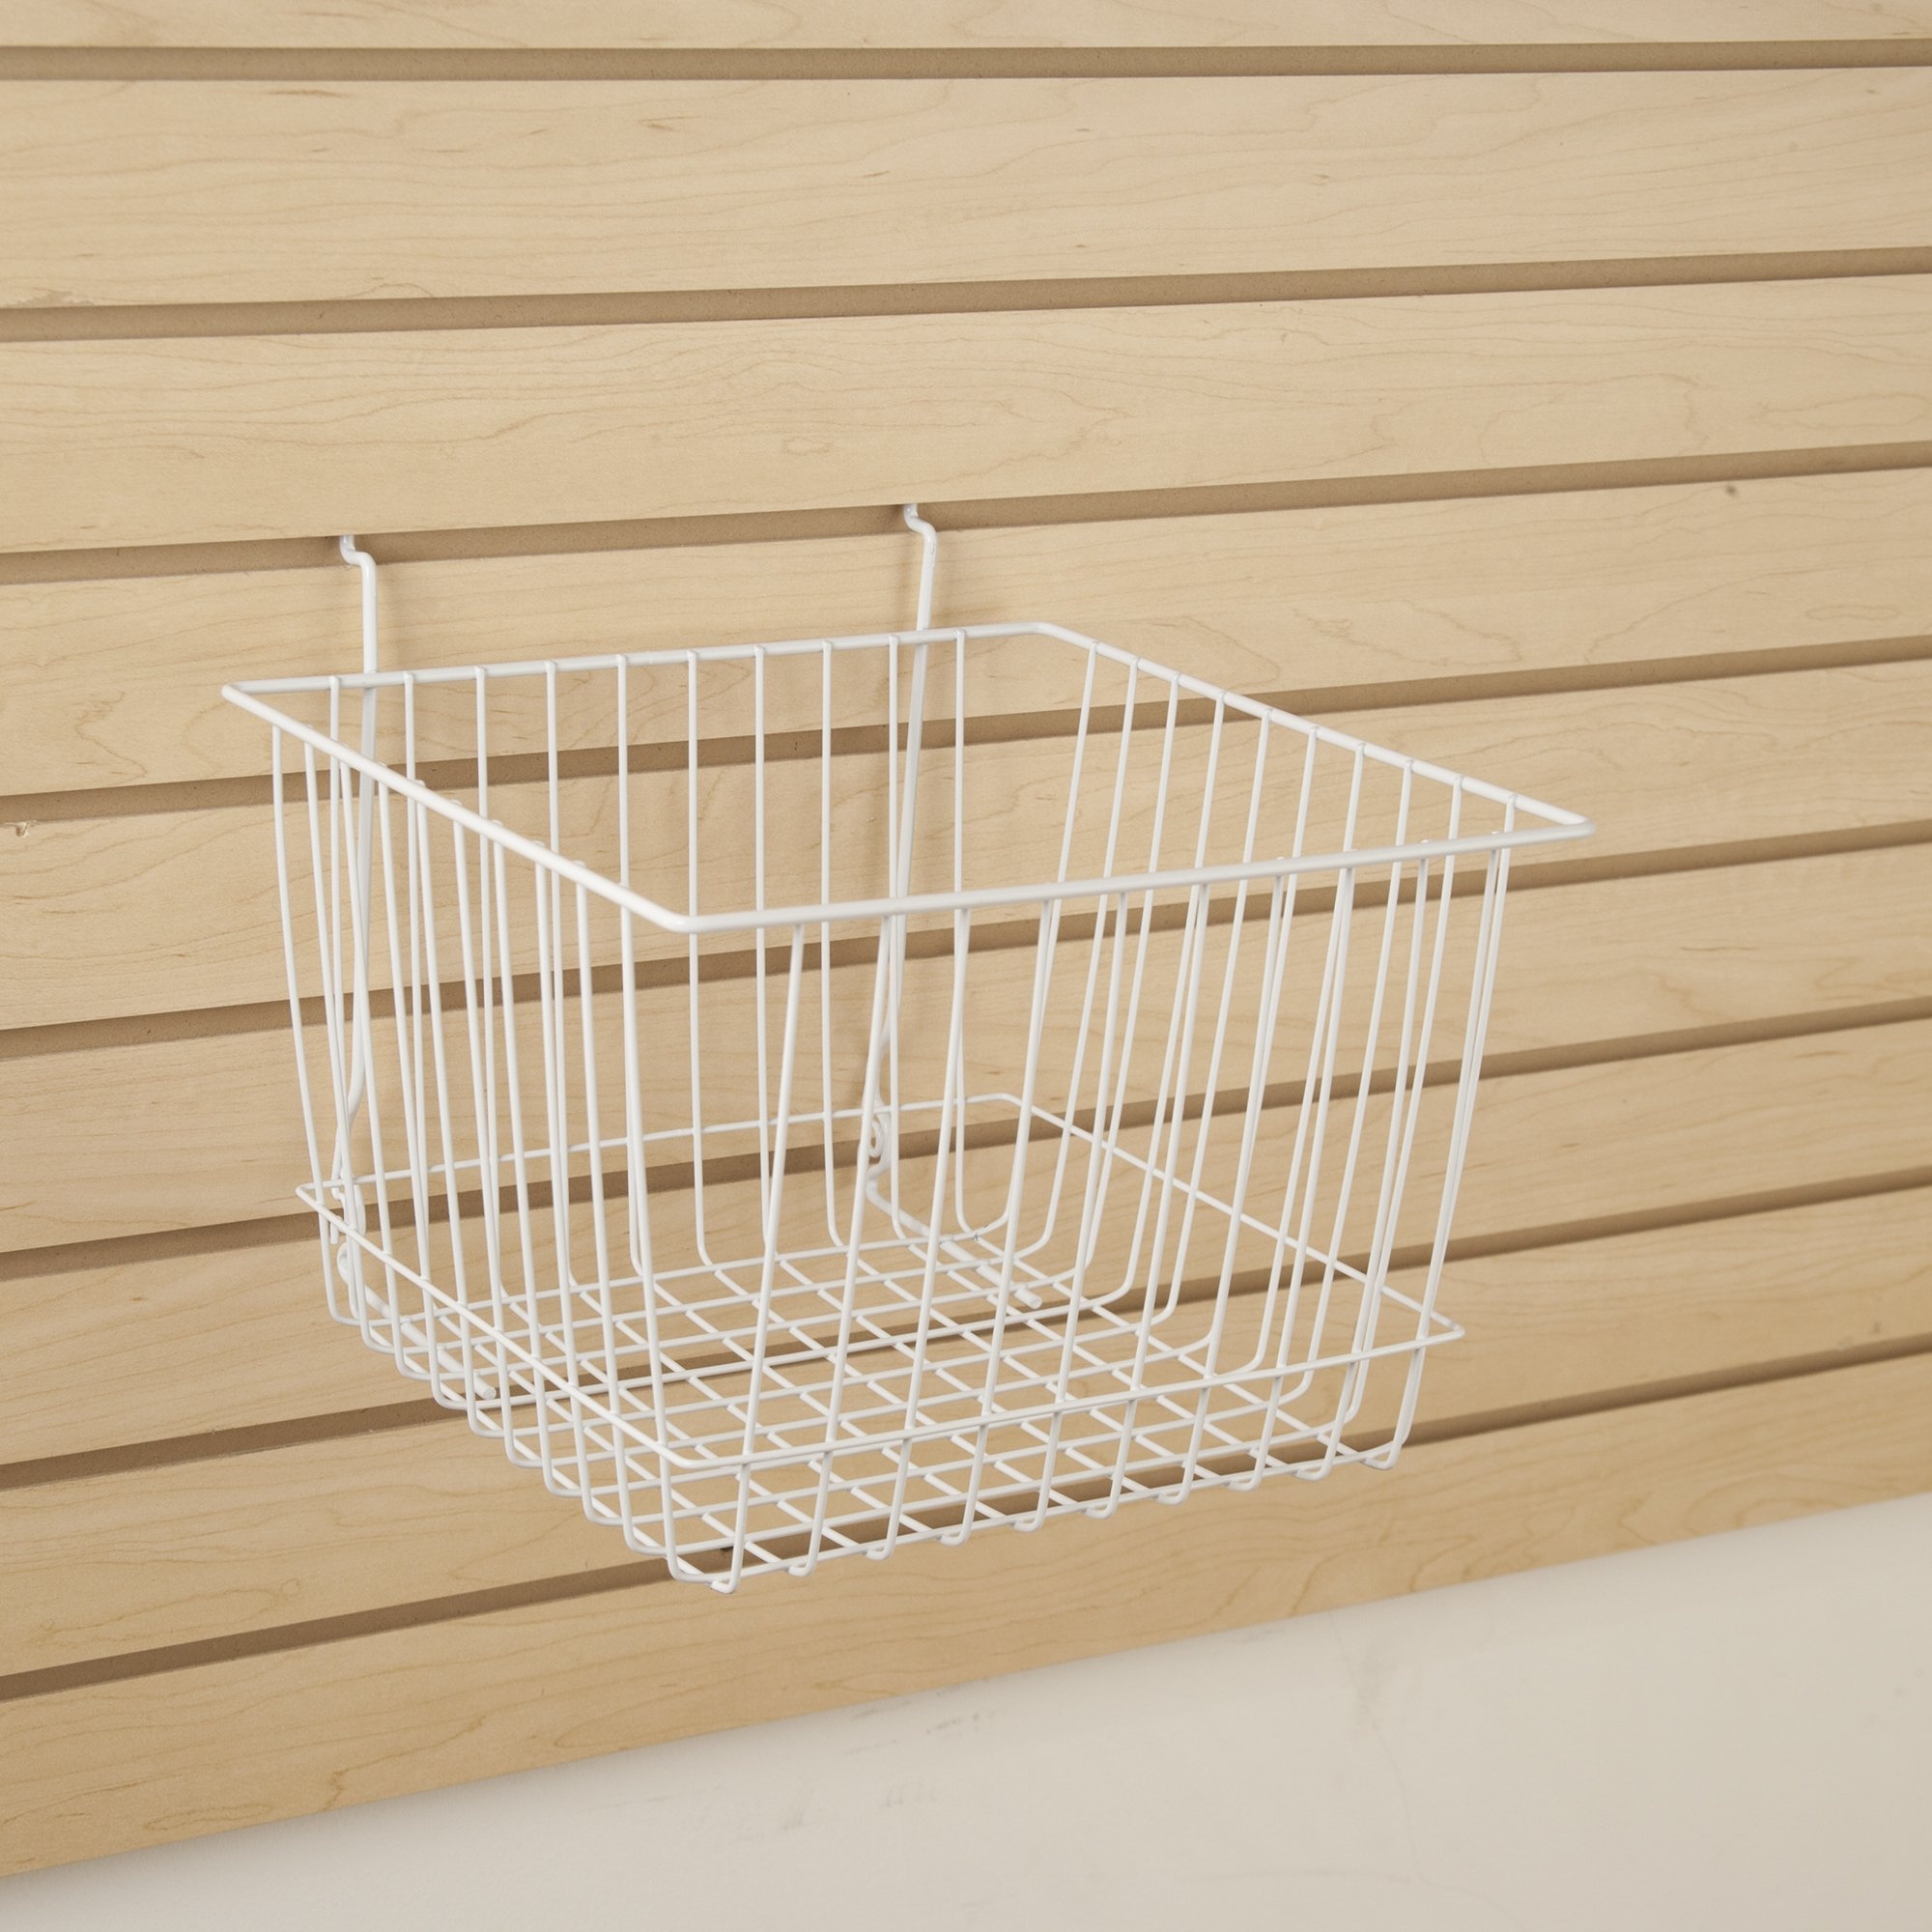 Wire Basket for Slatwall, Gridwall or Pegboard -Box of 6 - 12''W x 12''D x 8''H Deep Basket by Unknown (Image #2)